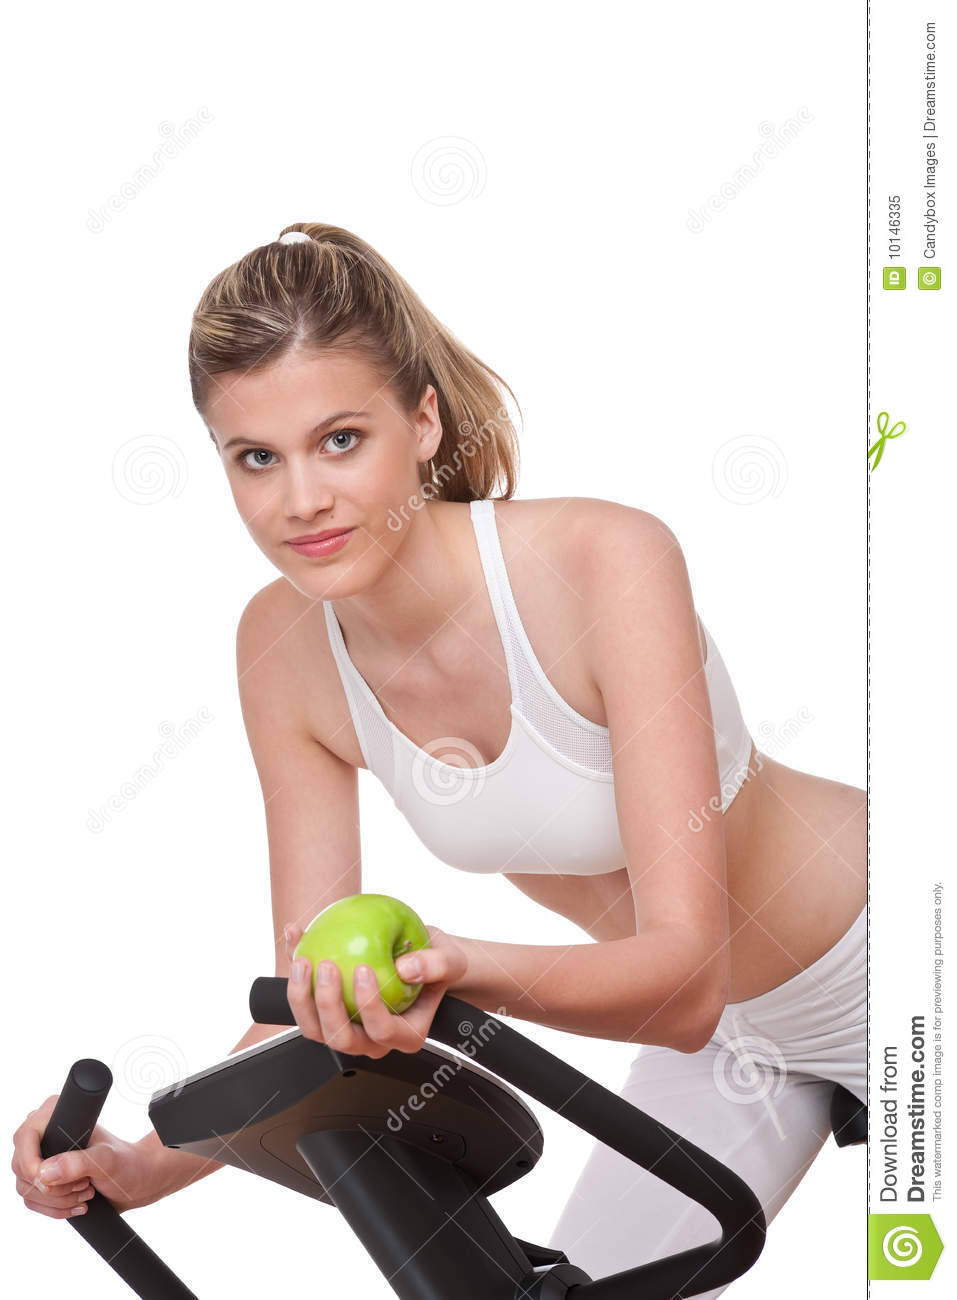 Fitness series - Woman holding apple